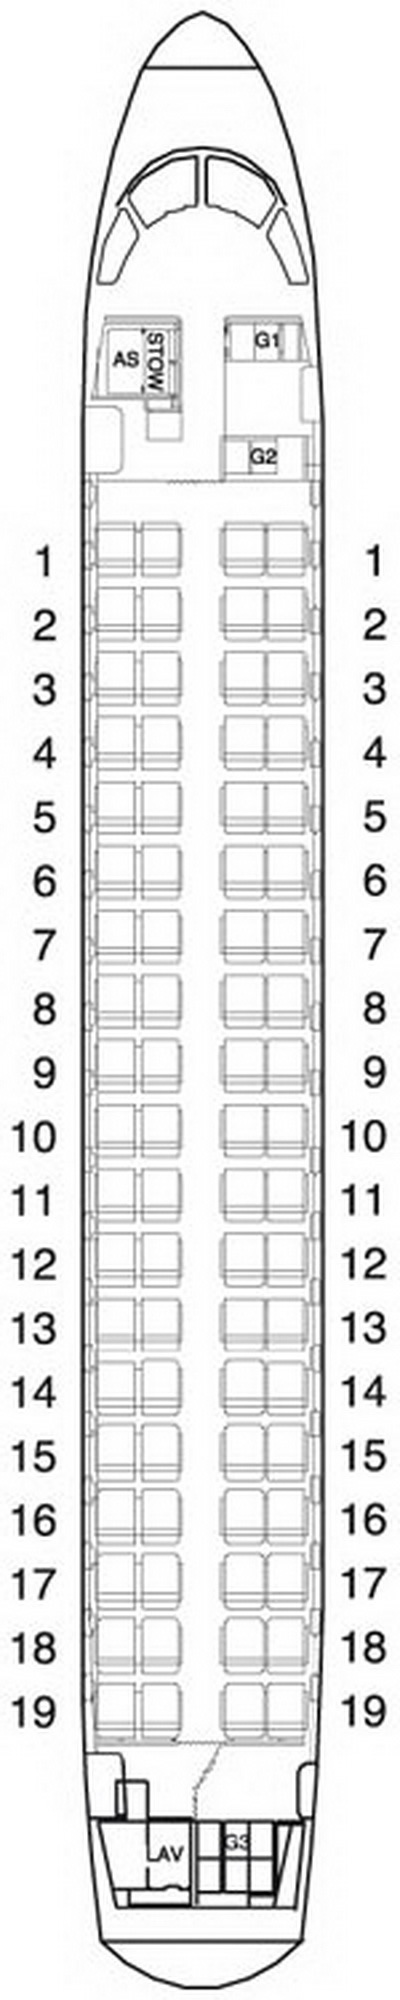 FINNAIR AIRLINES EMBRAER 170 AIRCRAFT SEATING CHART